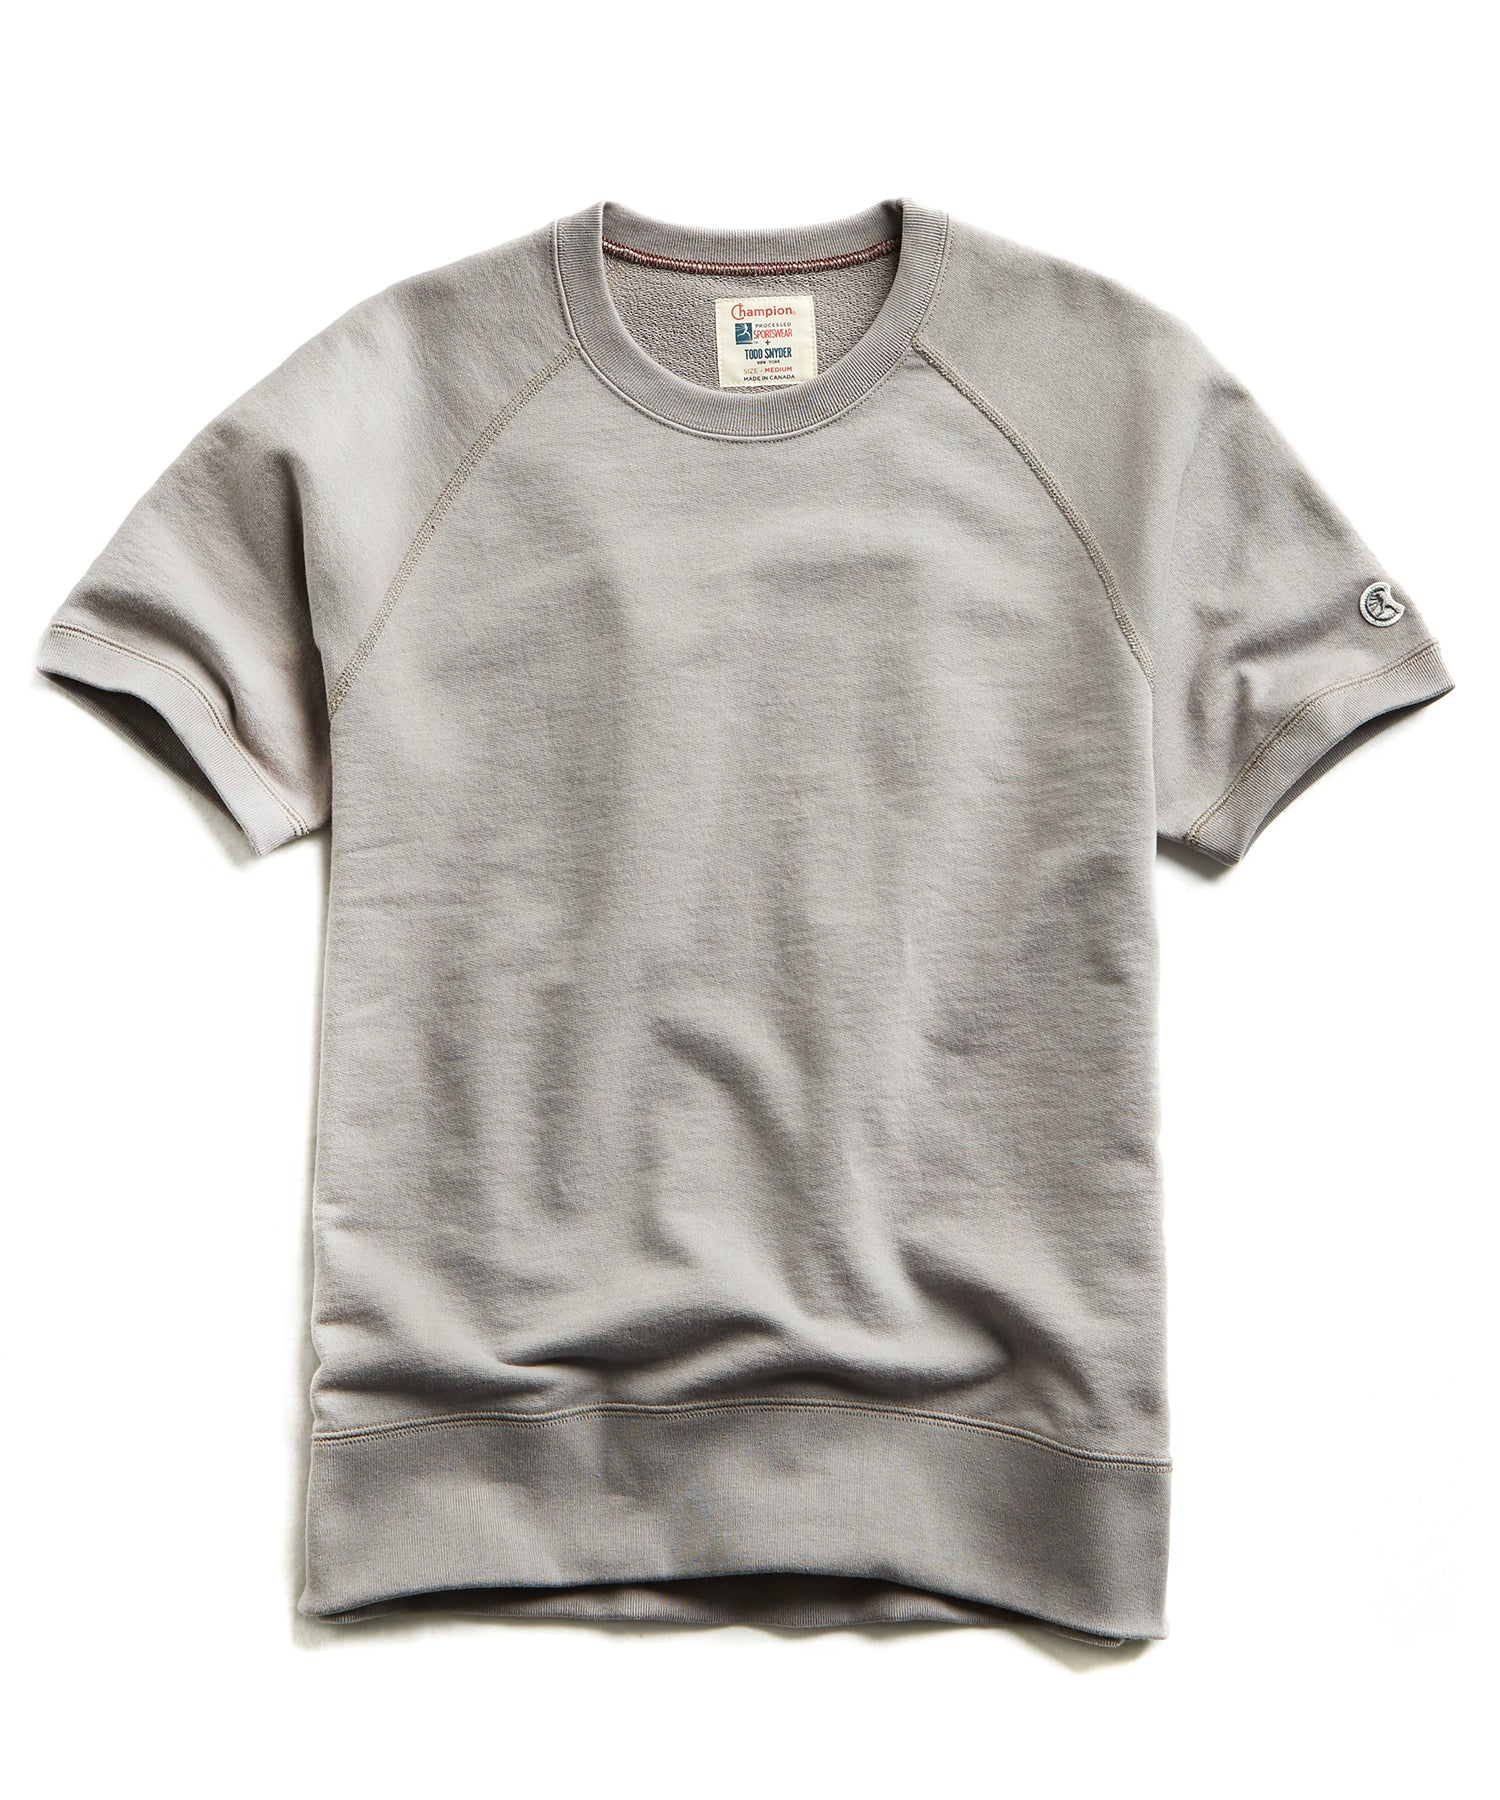 Terry Short Sleeve Sweatshirt in Pebble Grey